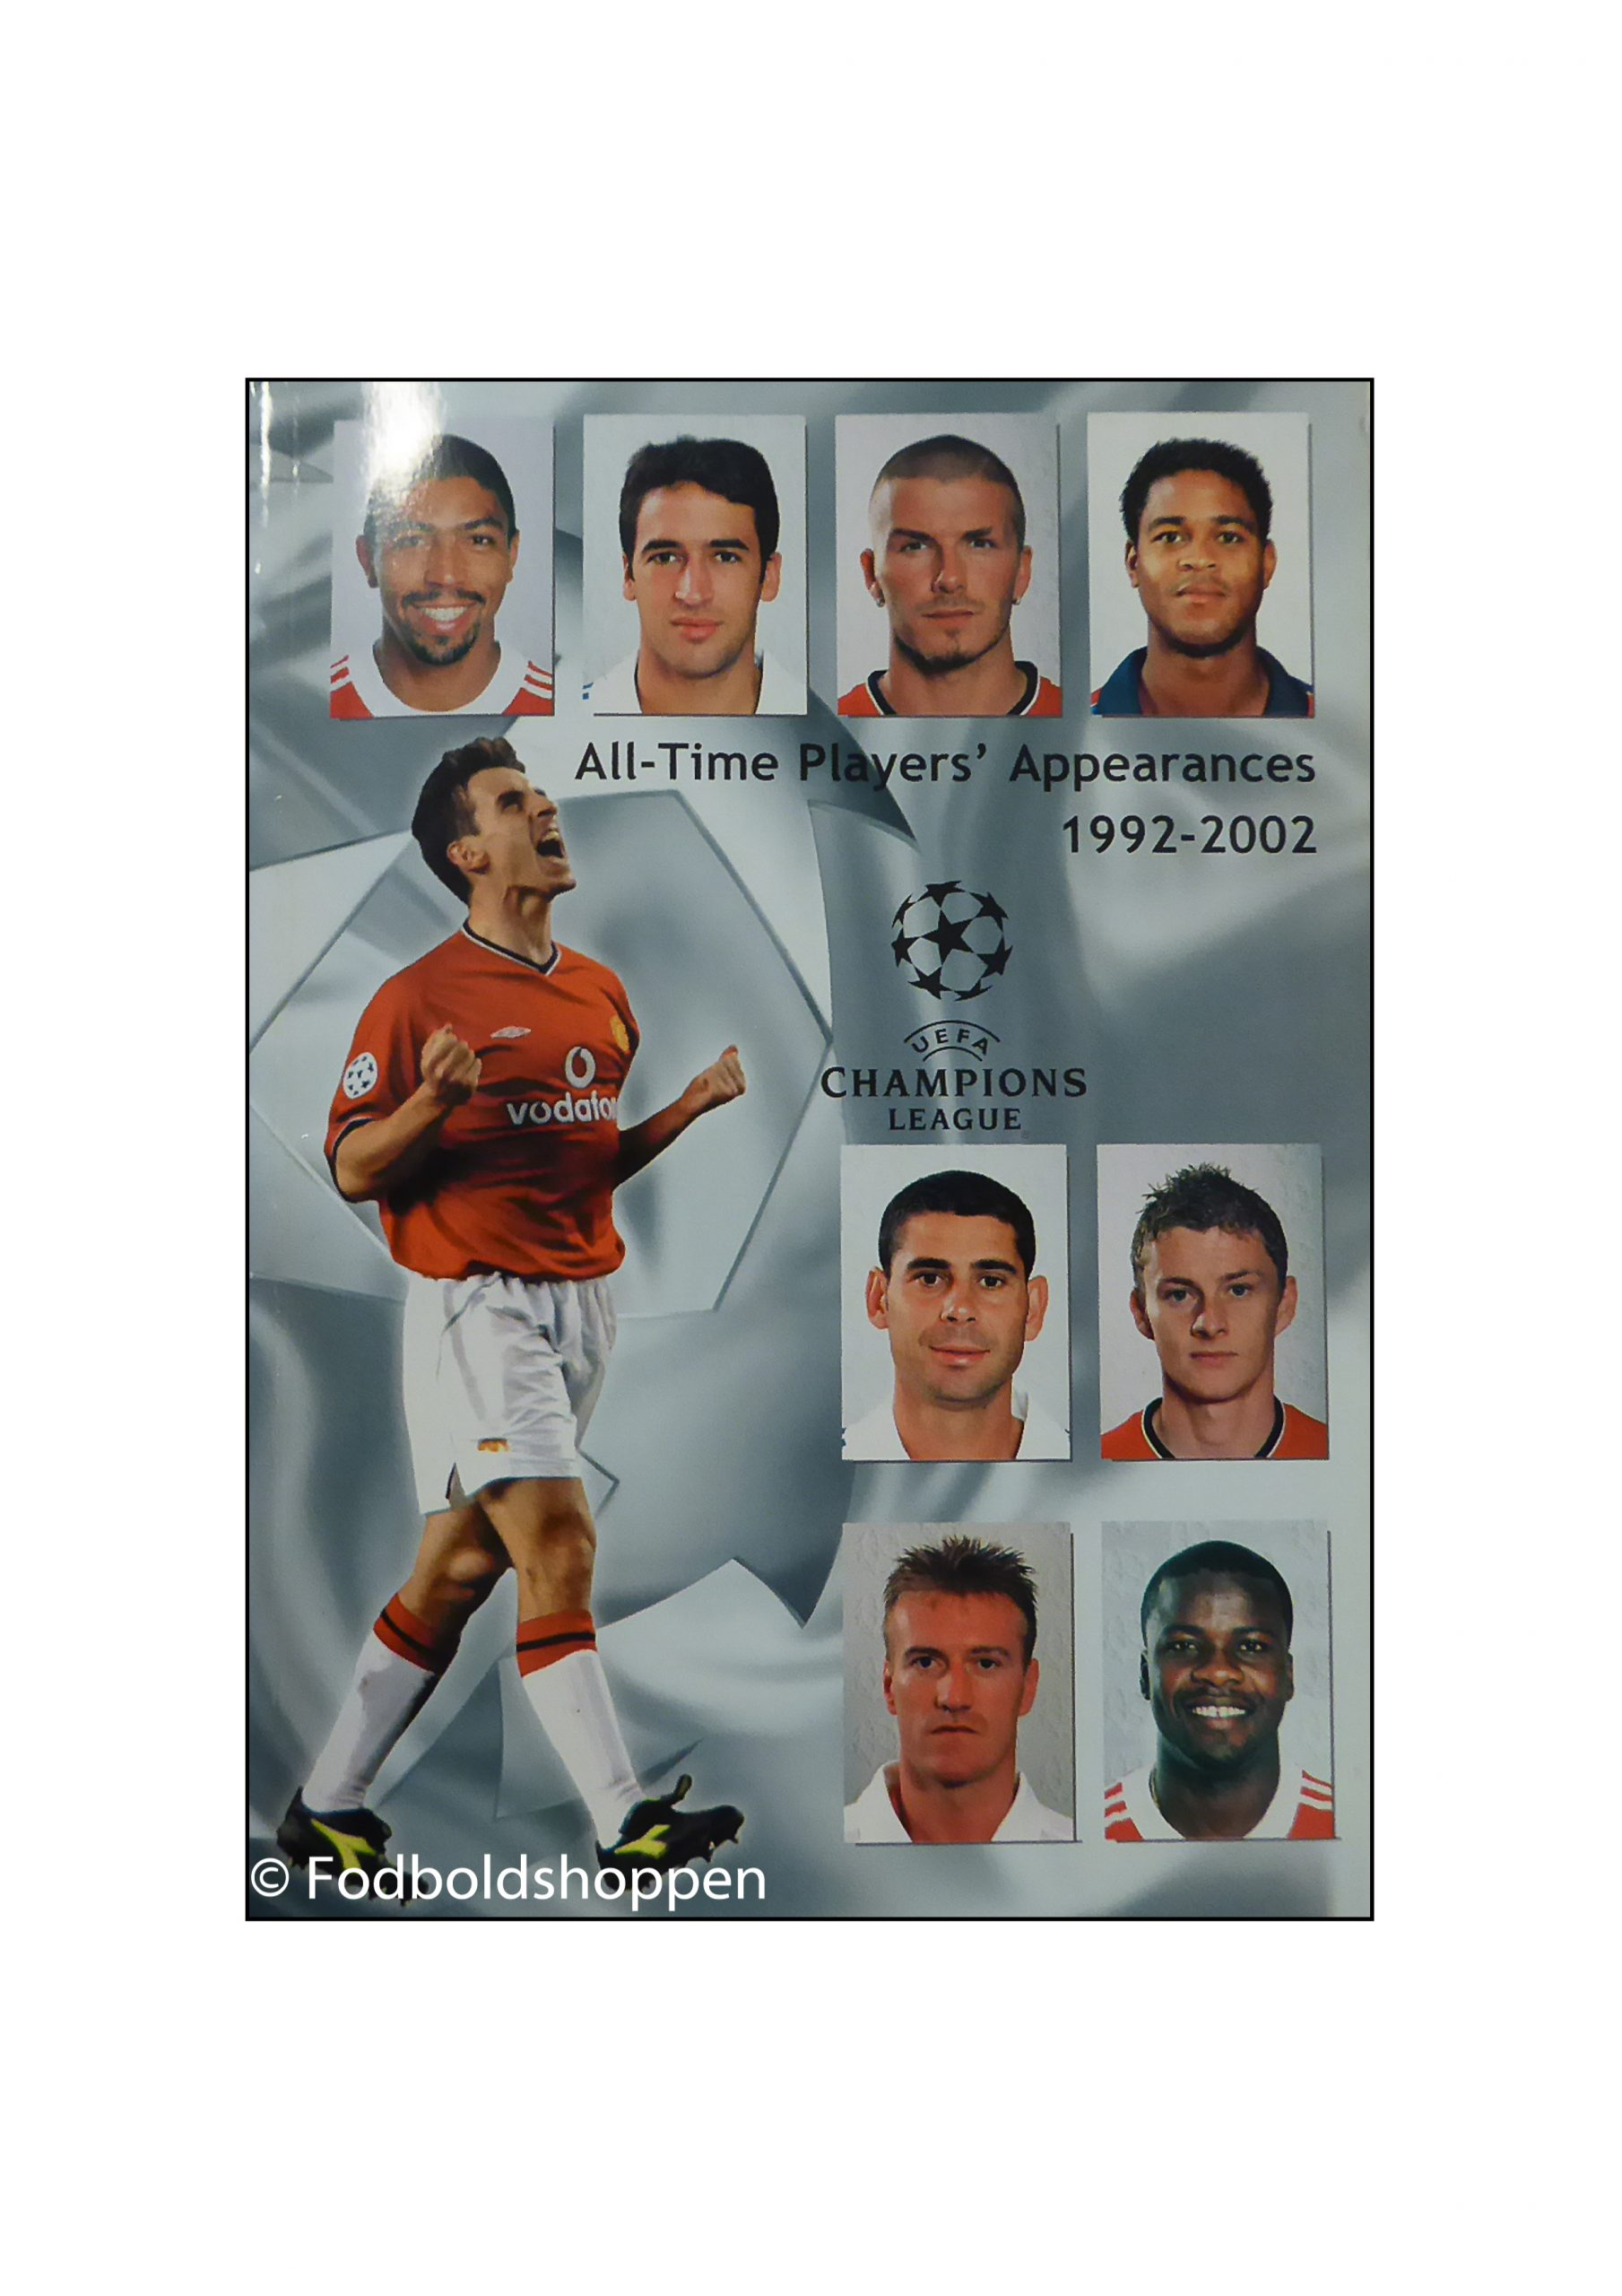 UEFA CHL - All Time Players Appearances 1992-2002